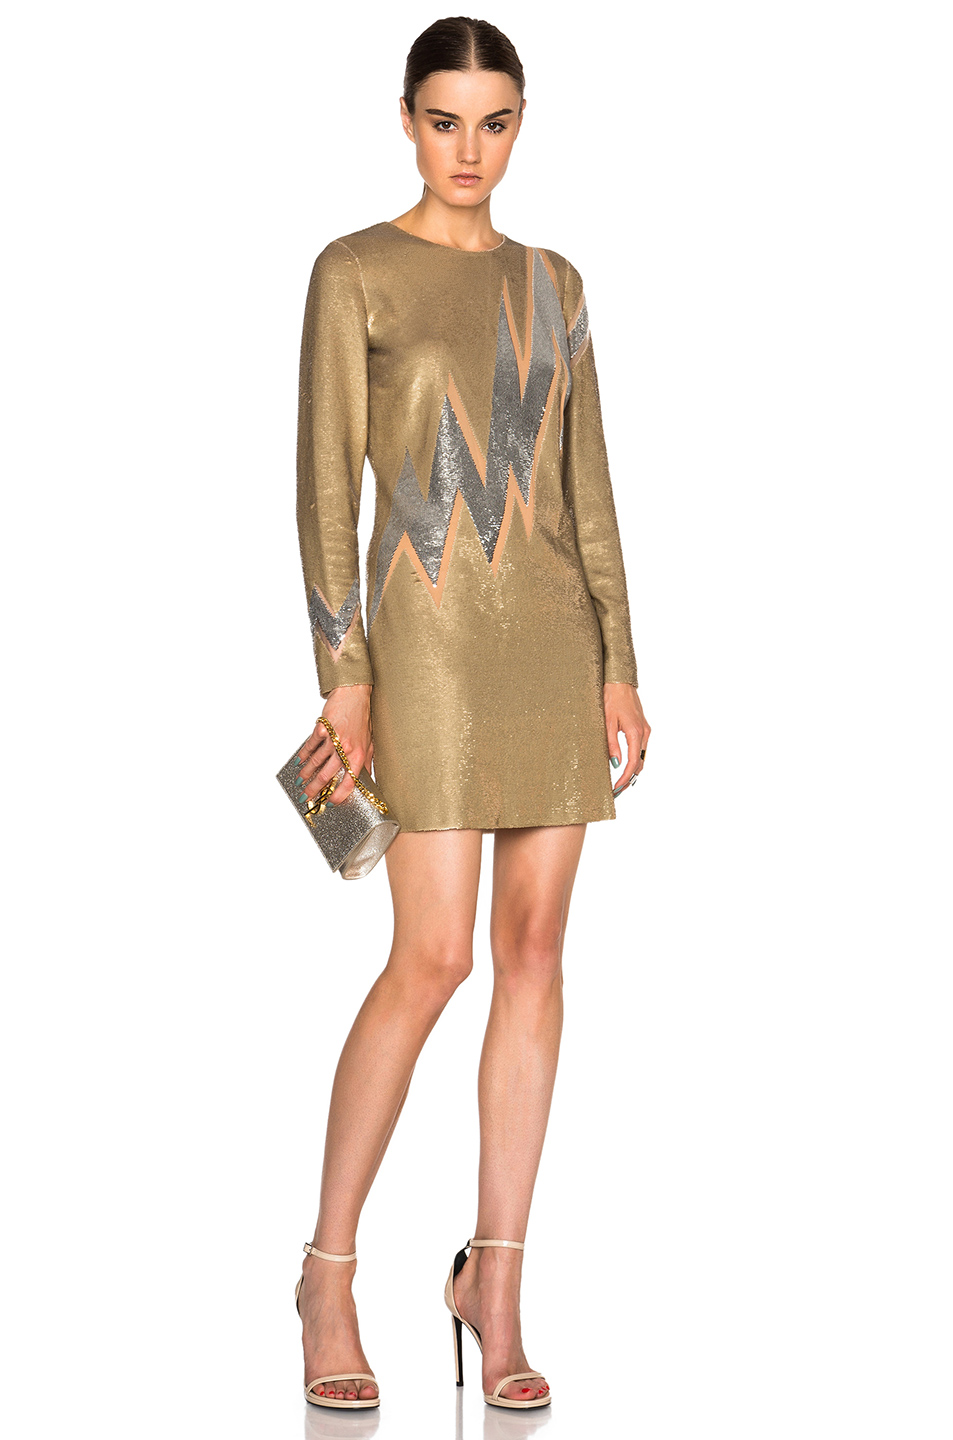 Emilio Pucci Sequin Mini Dress in Metallics